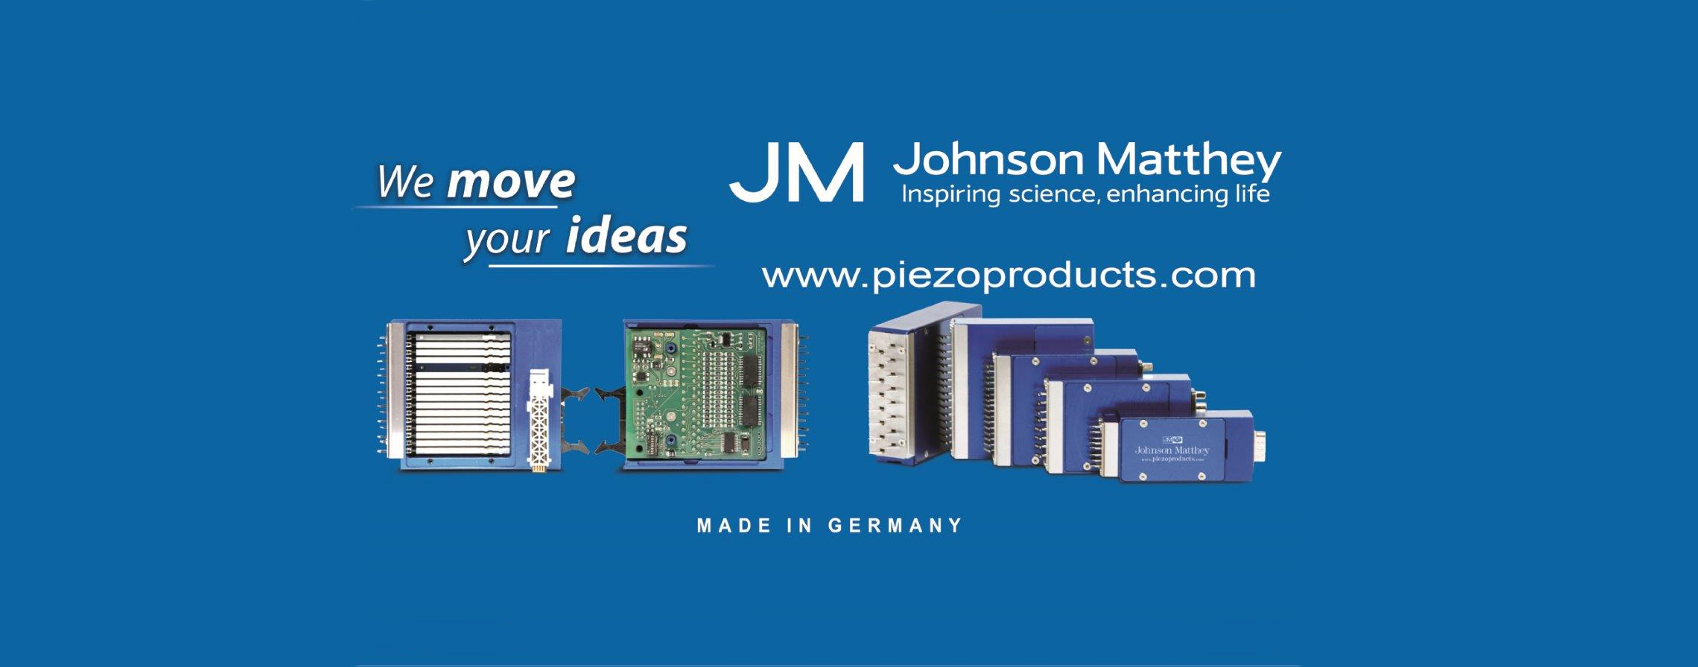 Johnson Matthey Header